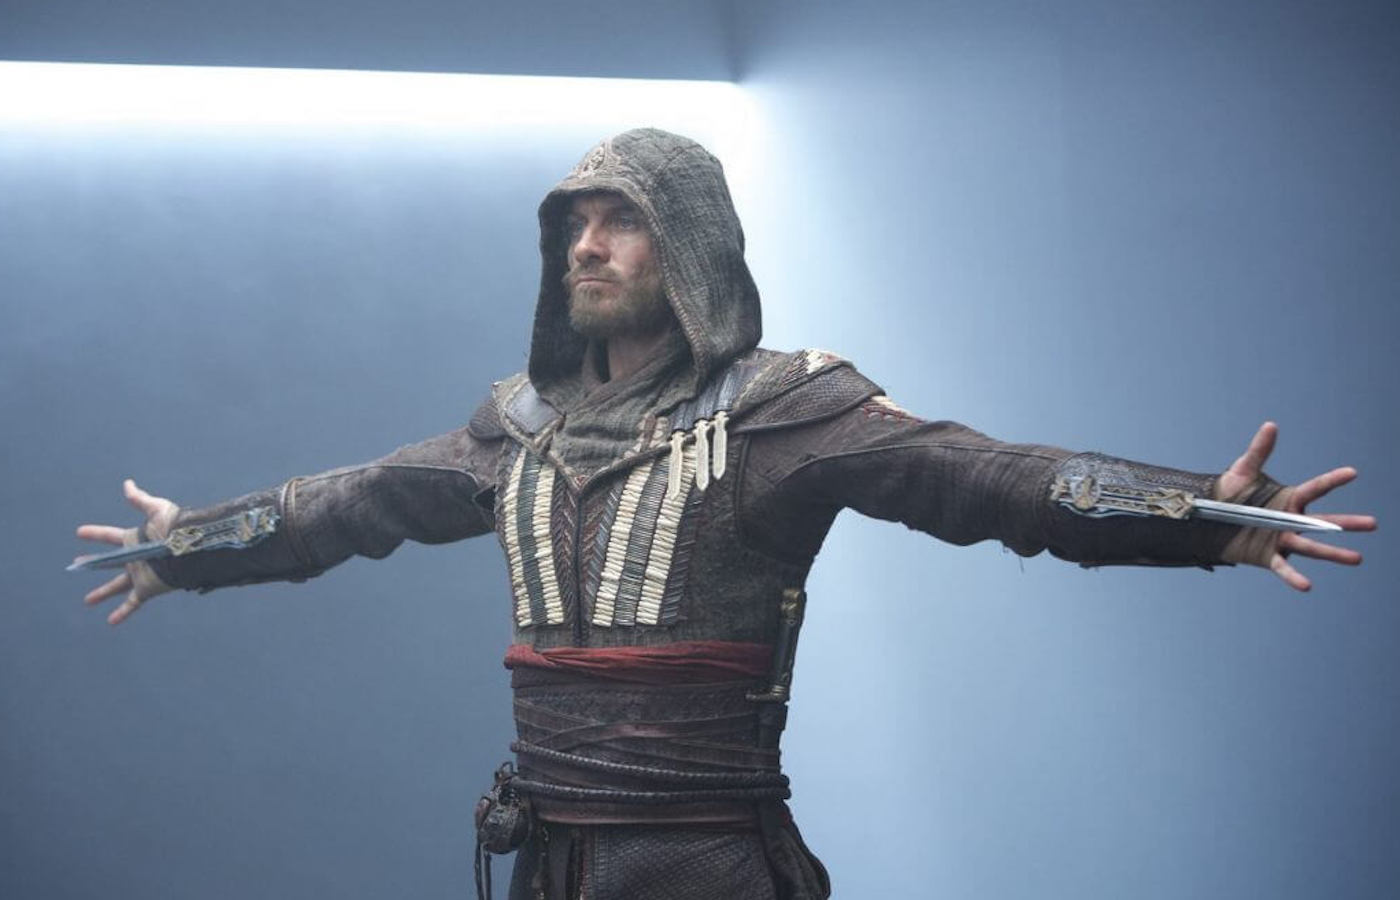 assassins-creed-michael-fassbender-image-11-2.jpg